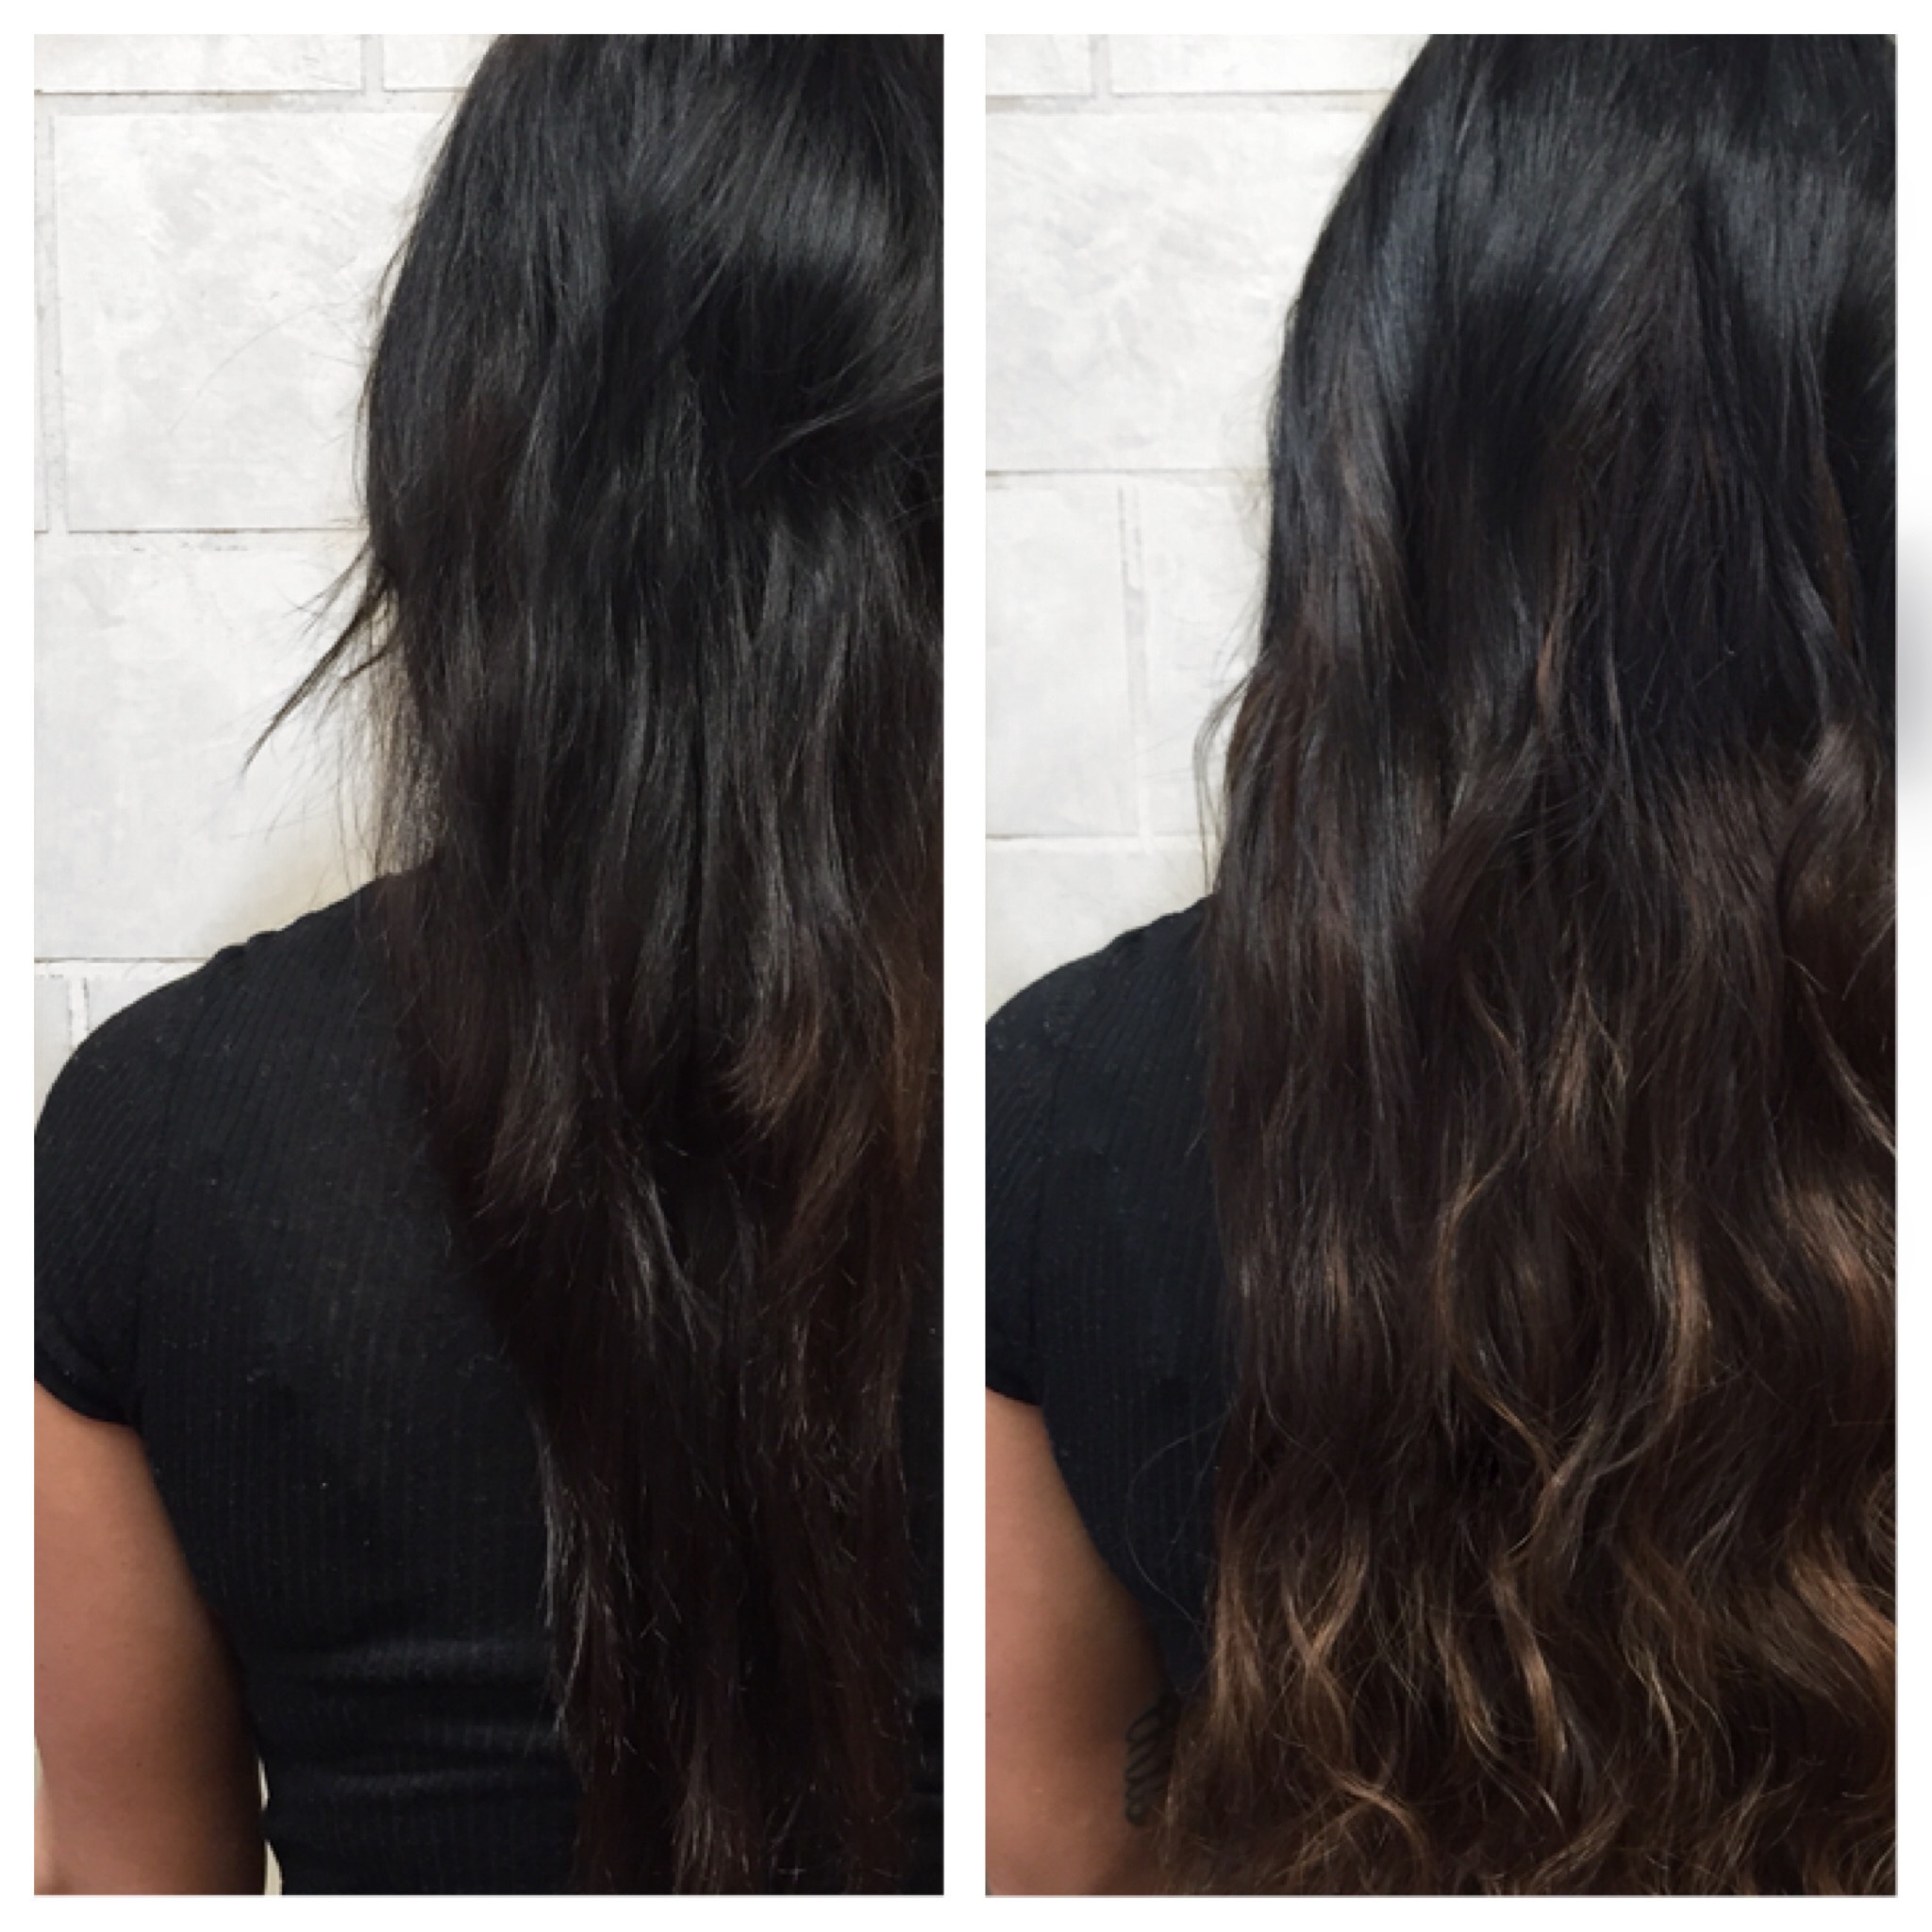 Microbead hair extensions charlotte, Malaysian Hair bundles Charlotte, NC, best hair extensions charlotte, best hair extenstions near ballantyne